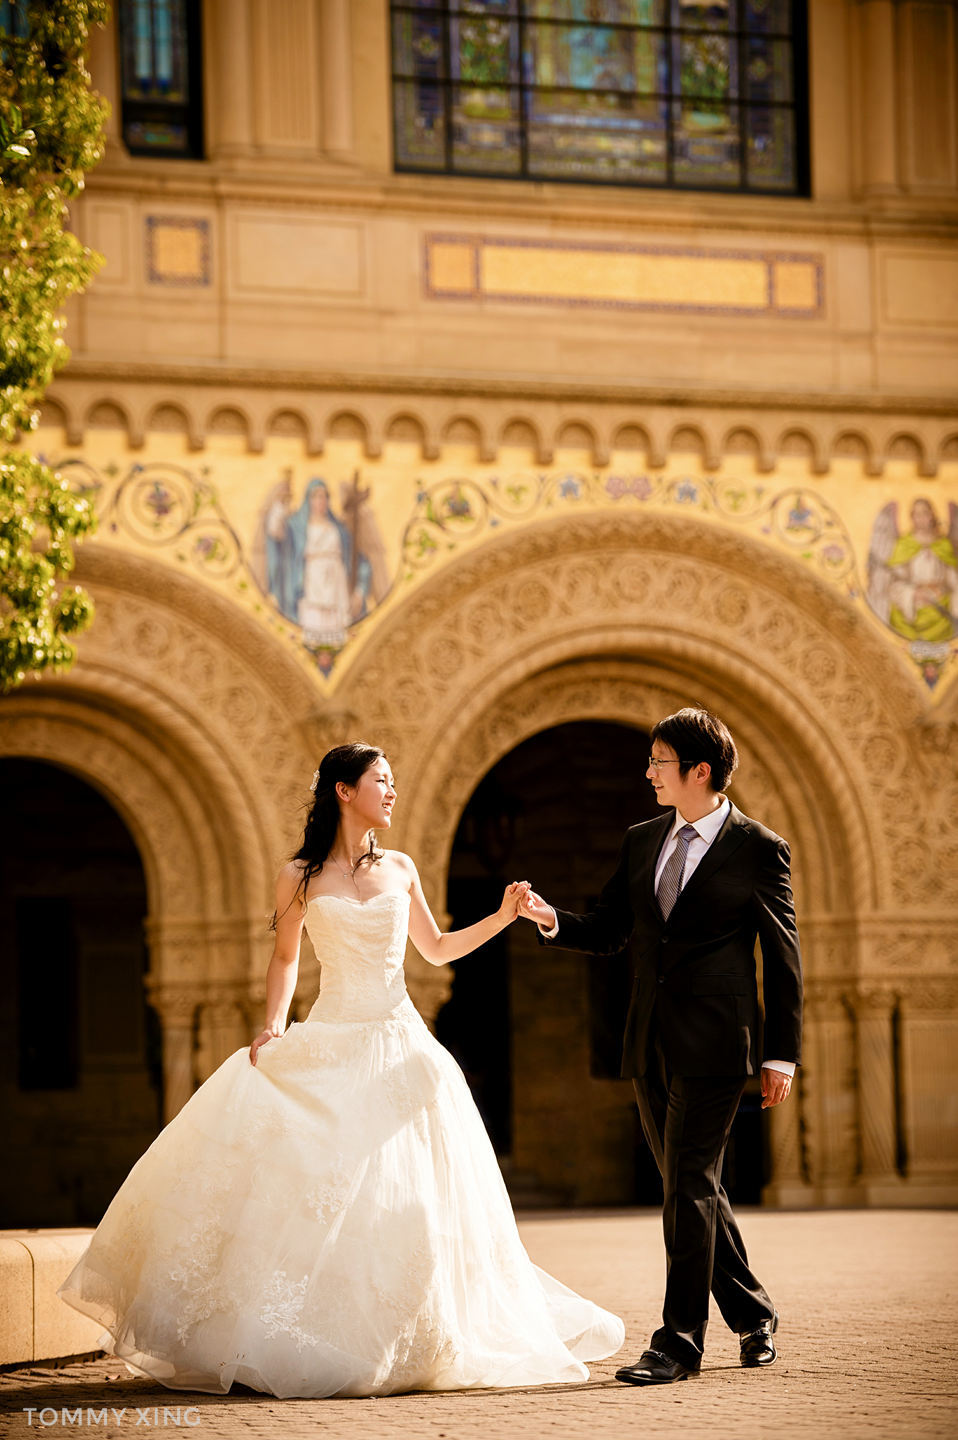 San Francisco Pre-Wedding Jiia Xu & Zhao Xu 旧金山湾区婚纱照 Tommy Xing Photography 12.jpg